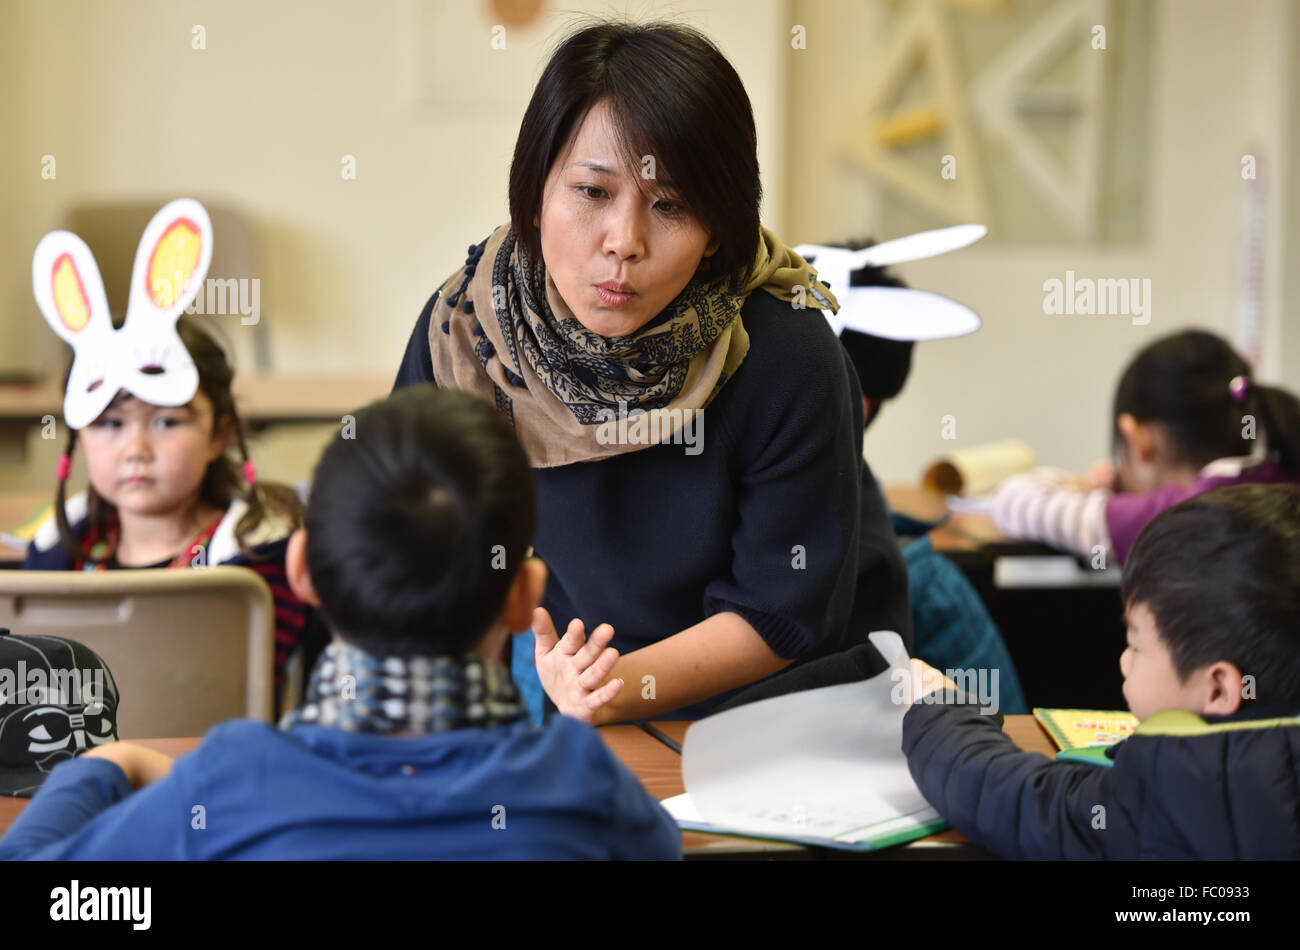 Oberursel, Germany. 22nd Nov, 2015. Teacher Tie Bai teaching pupils of the entry-level course, 'The Panda Bears', - Stock Image